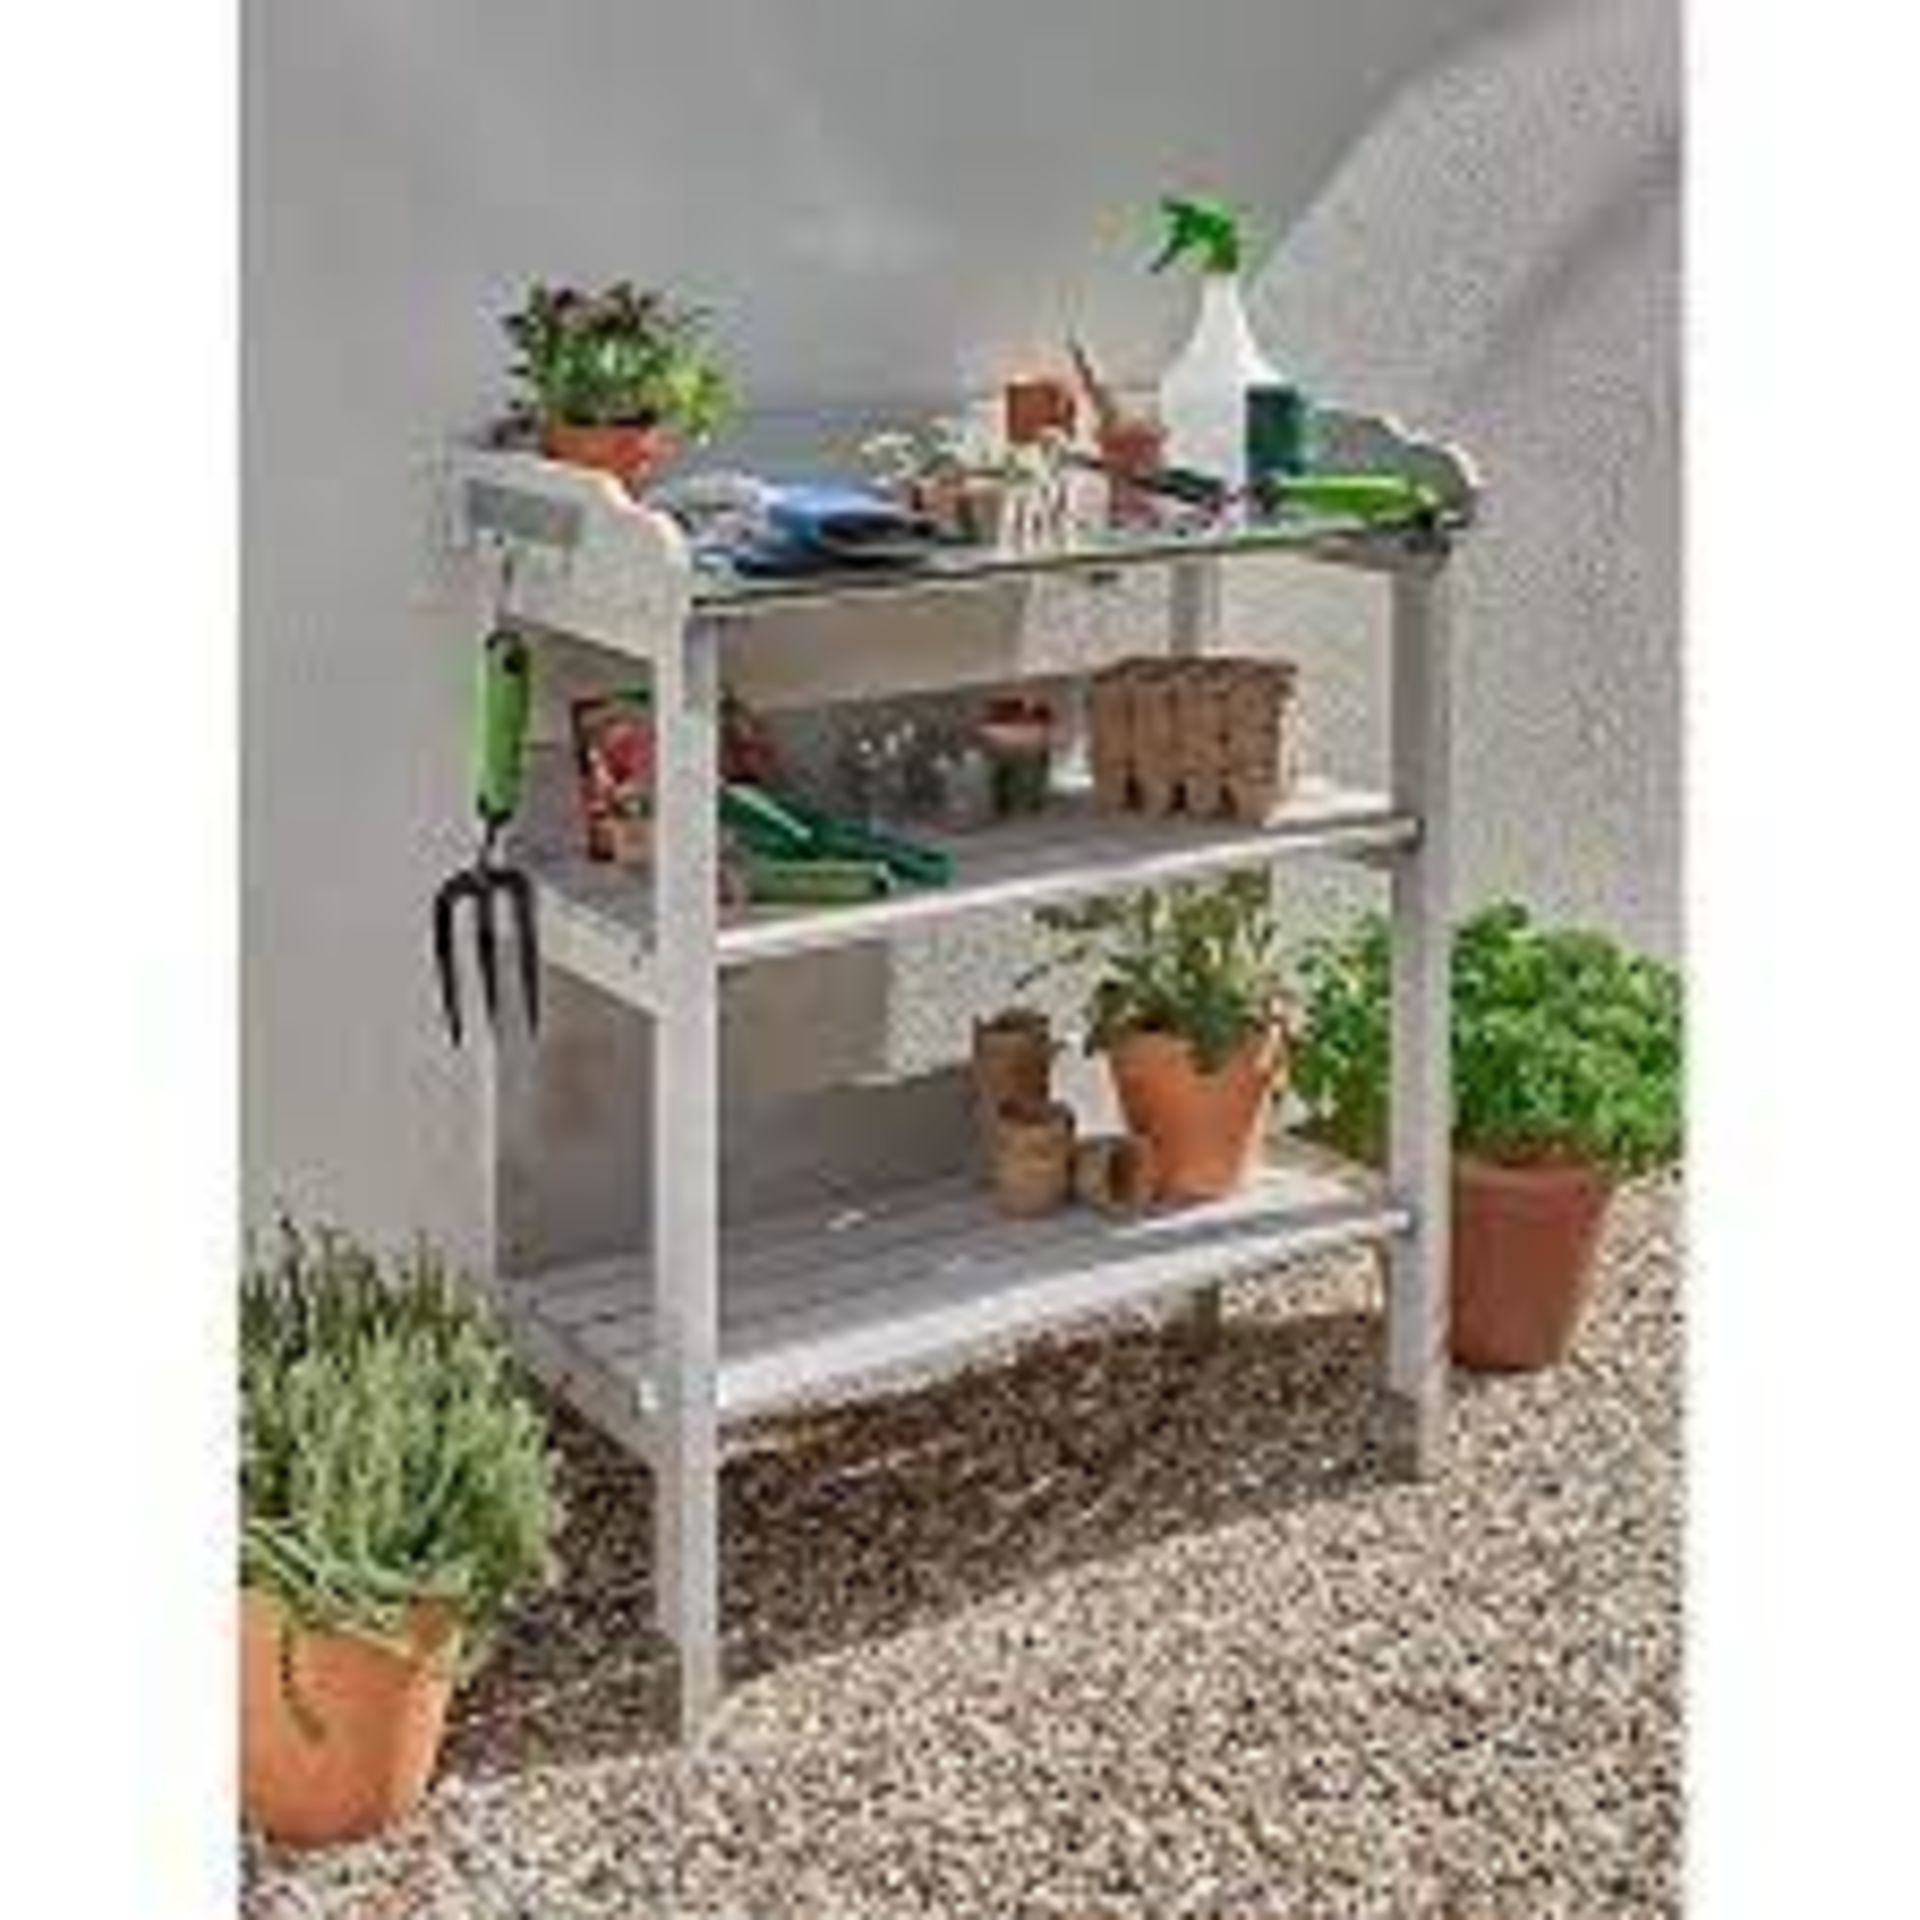 (3C) 2x Items. 1x GH Wooden Plant Stand. 1x GH Wooden Potting Bench. - Image 2 of 5